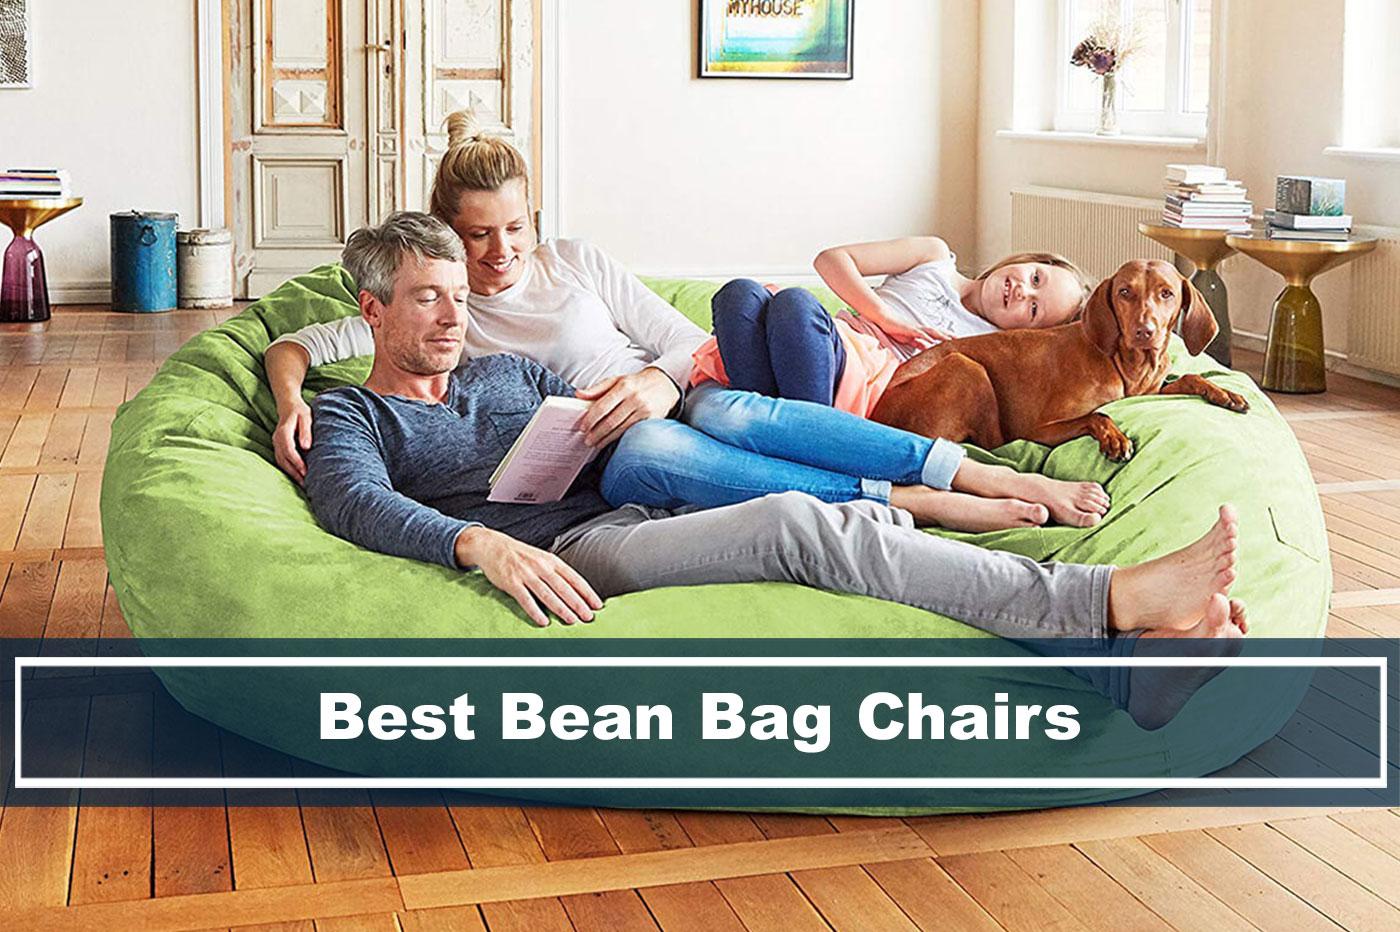 family sitting on the best bean bag chairs